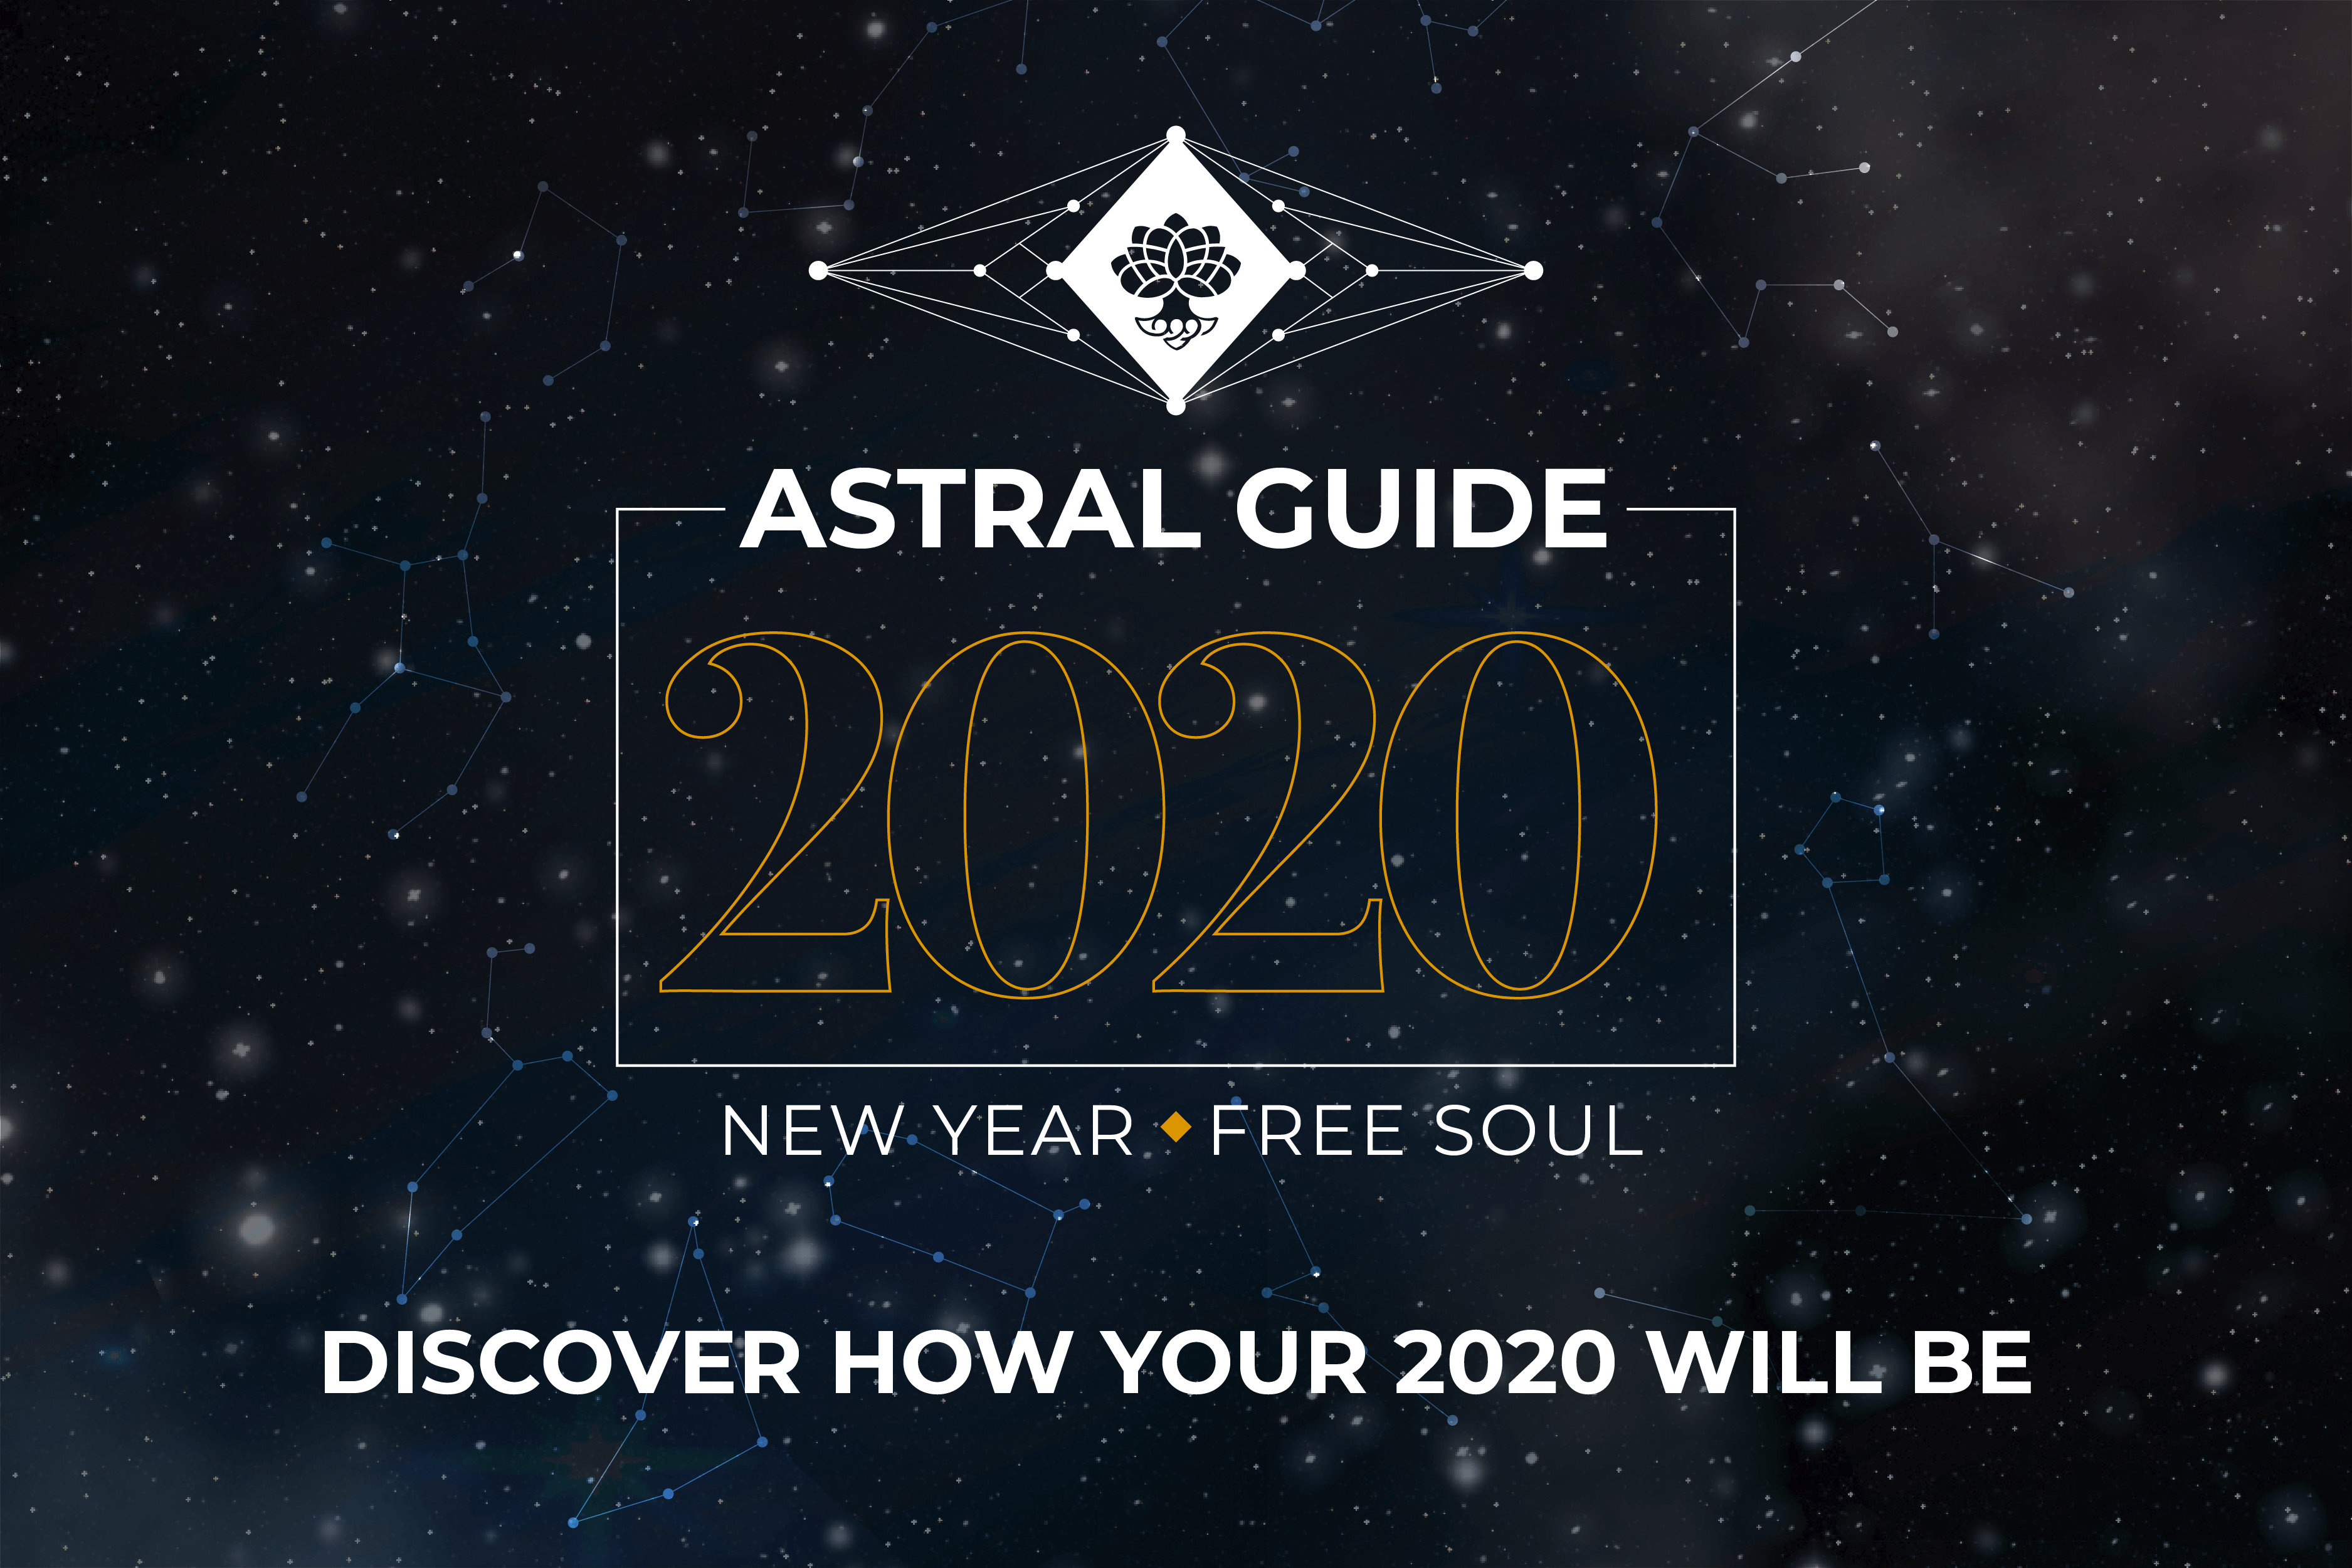 Astral Guides 2020 - Find out what 2020 will look like